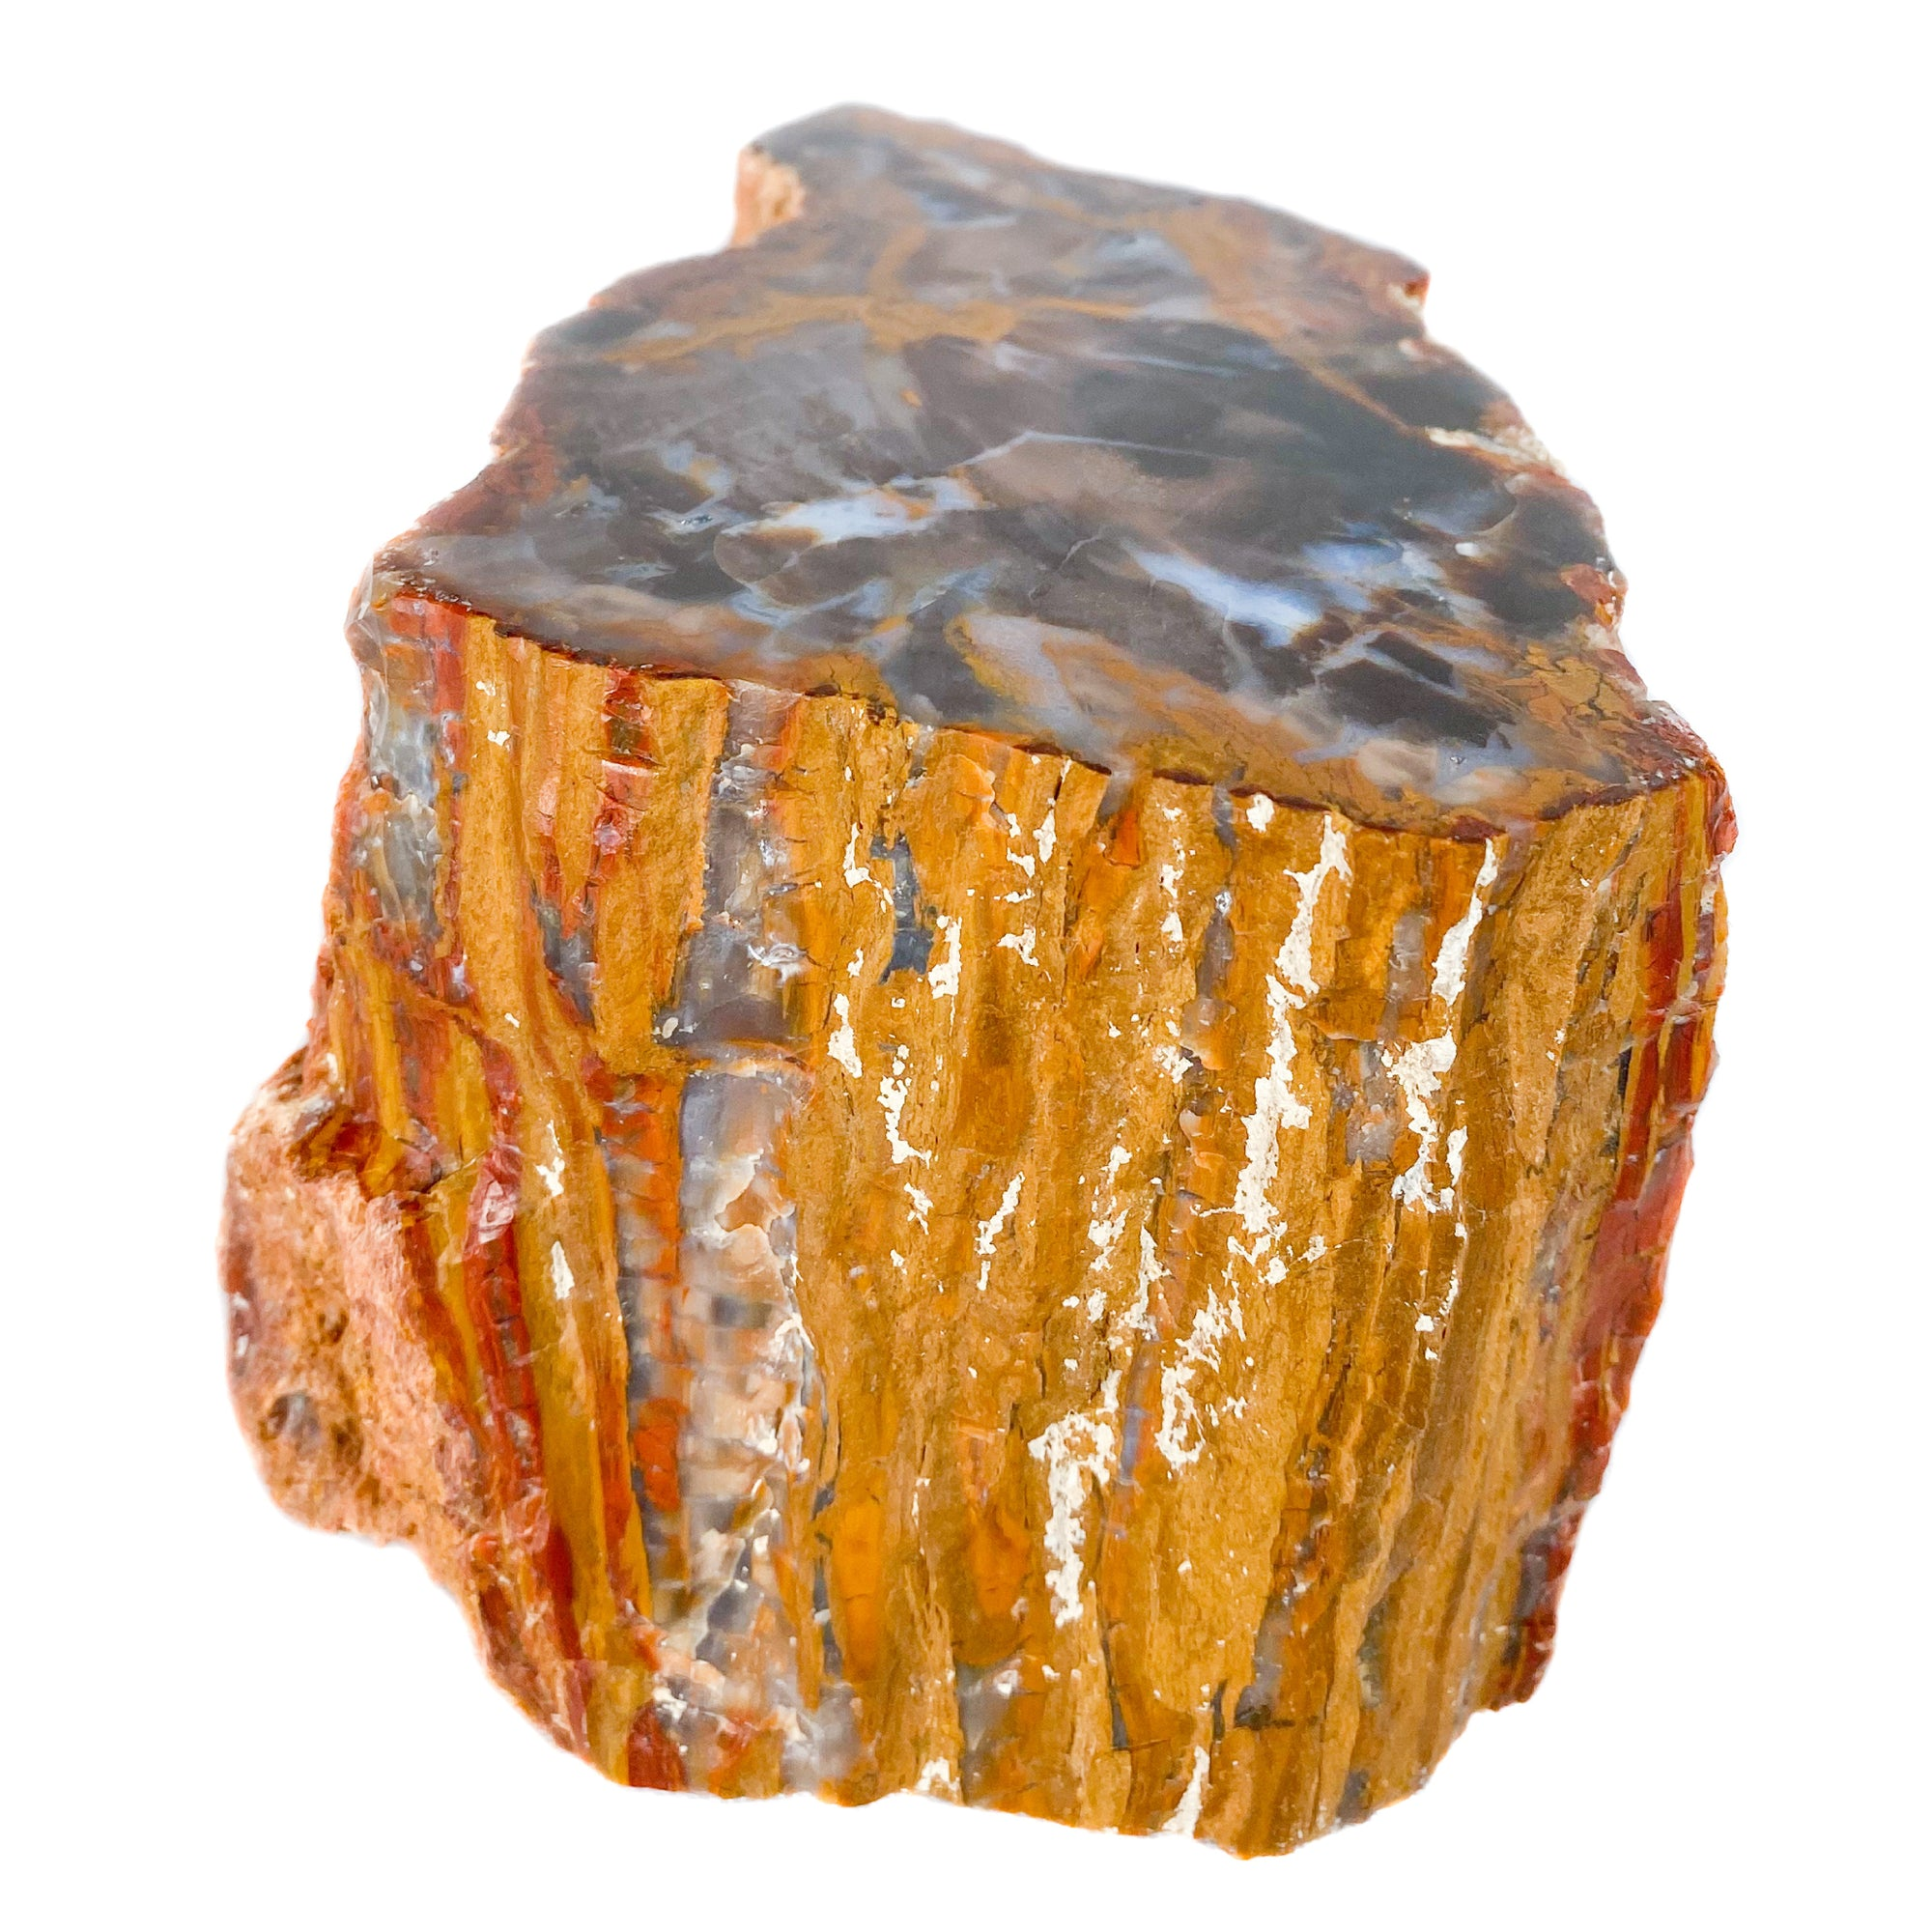 Red Orange and Blue Petrified Wood from Parker, Colorado